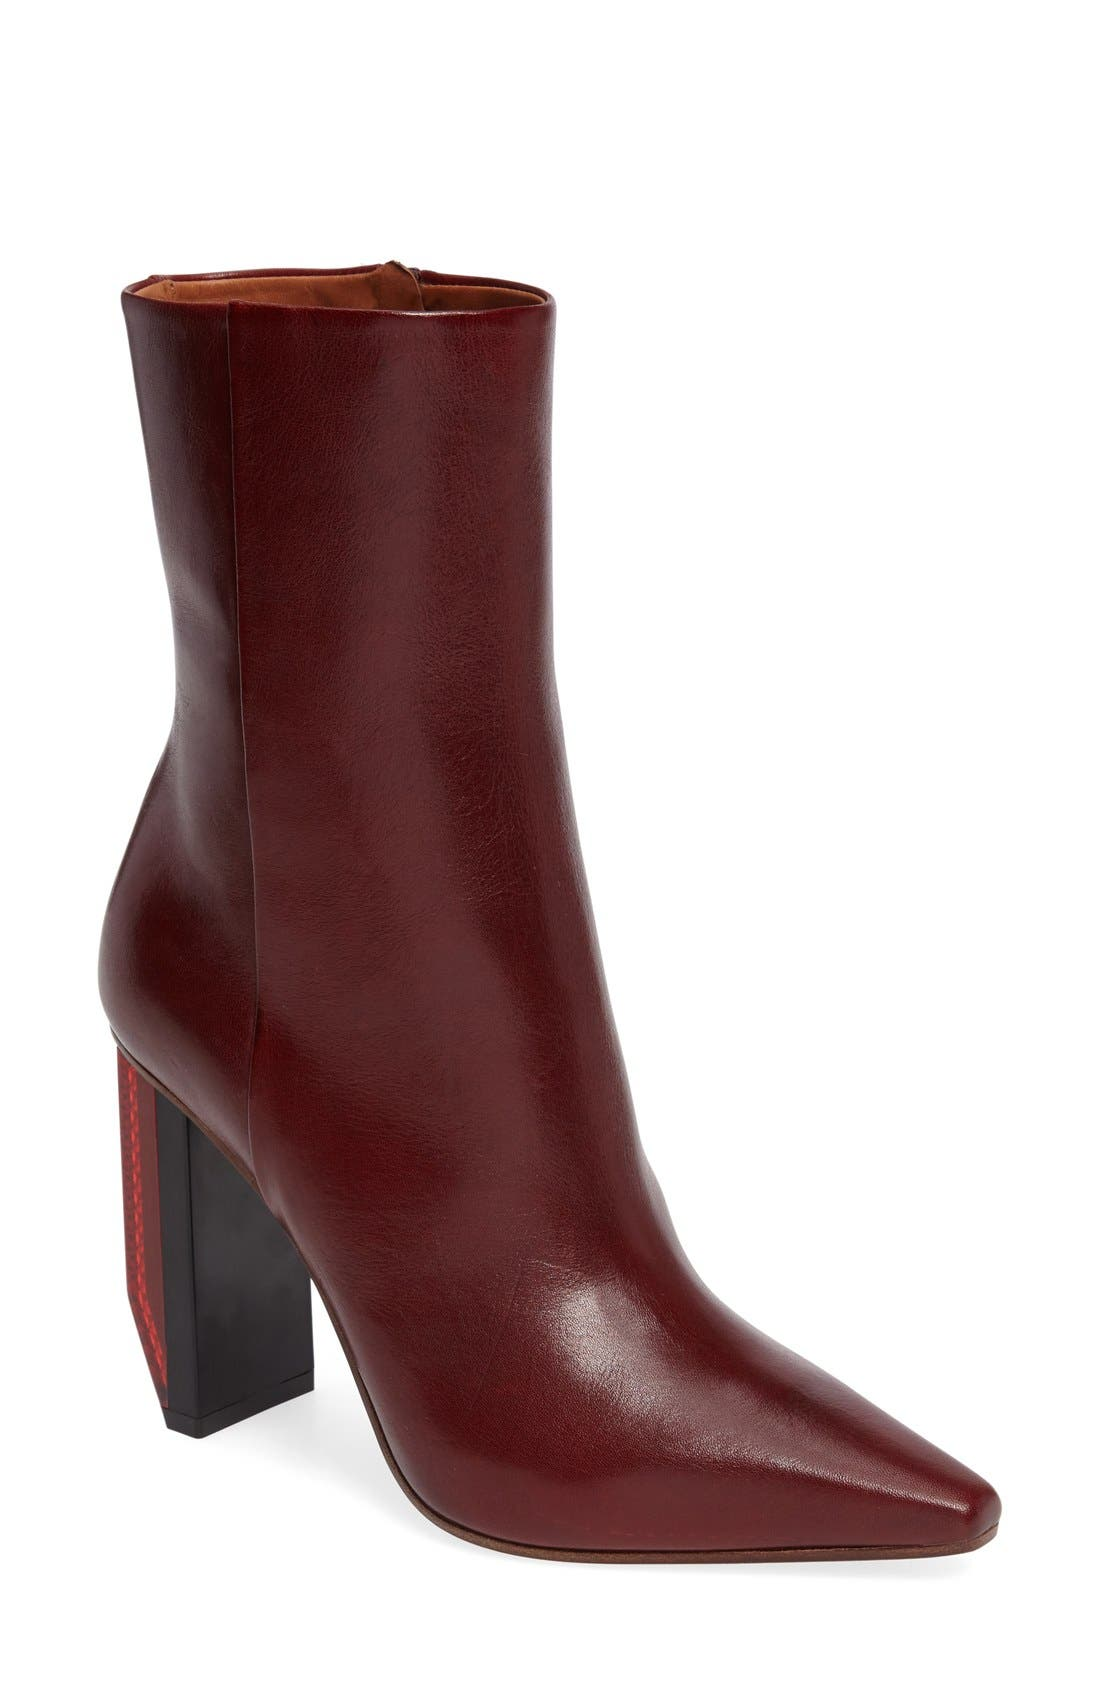 Reflector Heel Ankle Boot,                         Main,                         color, Burgundy/ Red Heel